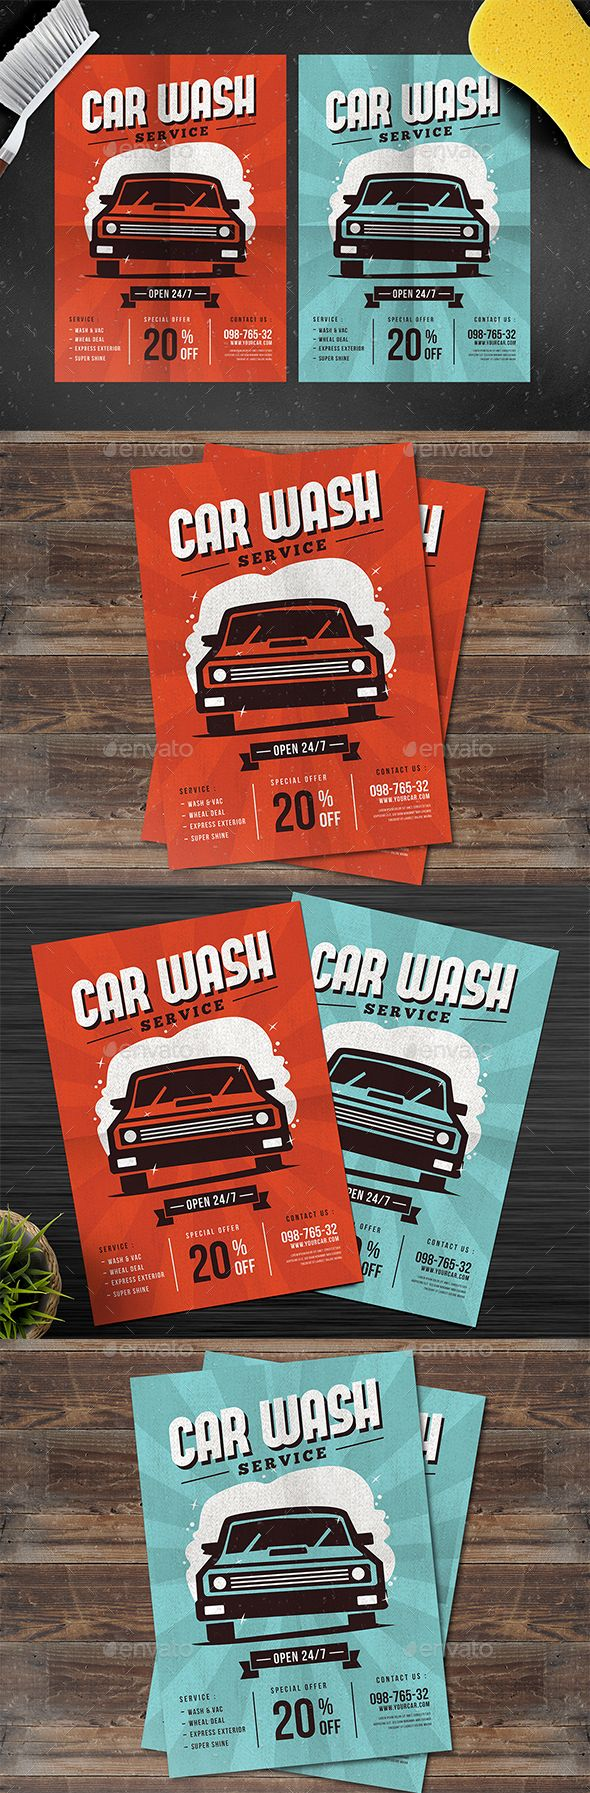 Car Wash Service #Flyer - Events Flyers Download here: https://graphicriver.net/item/car-wash-service-flyer/19221516?ref=alena994